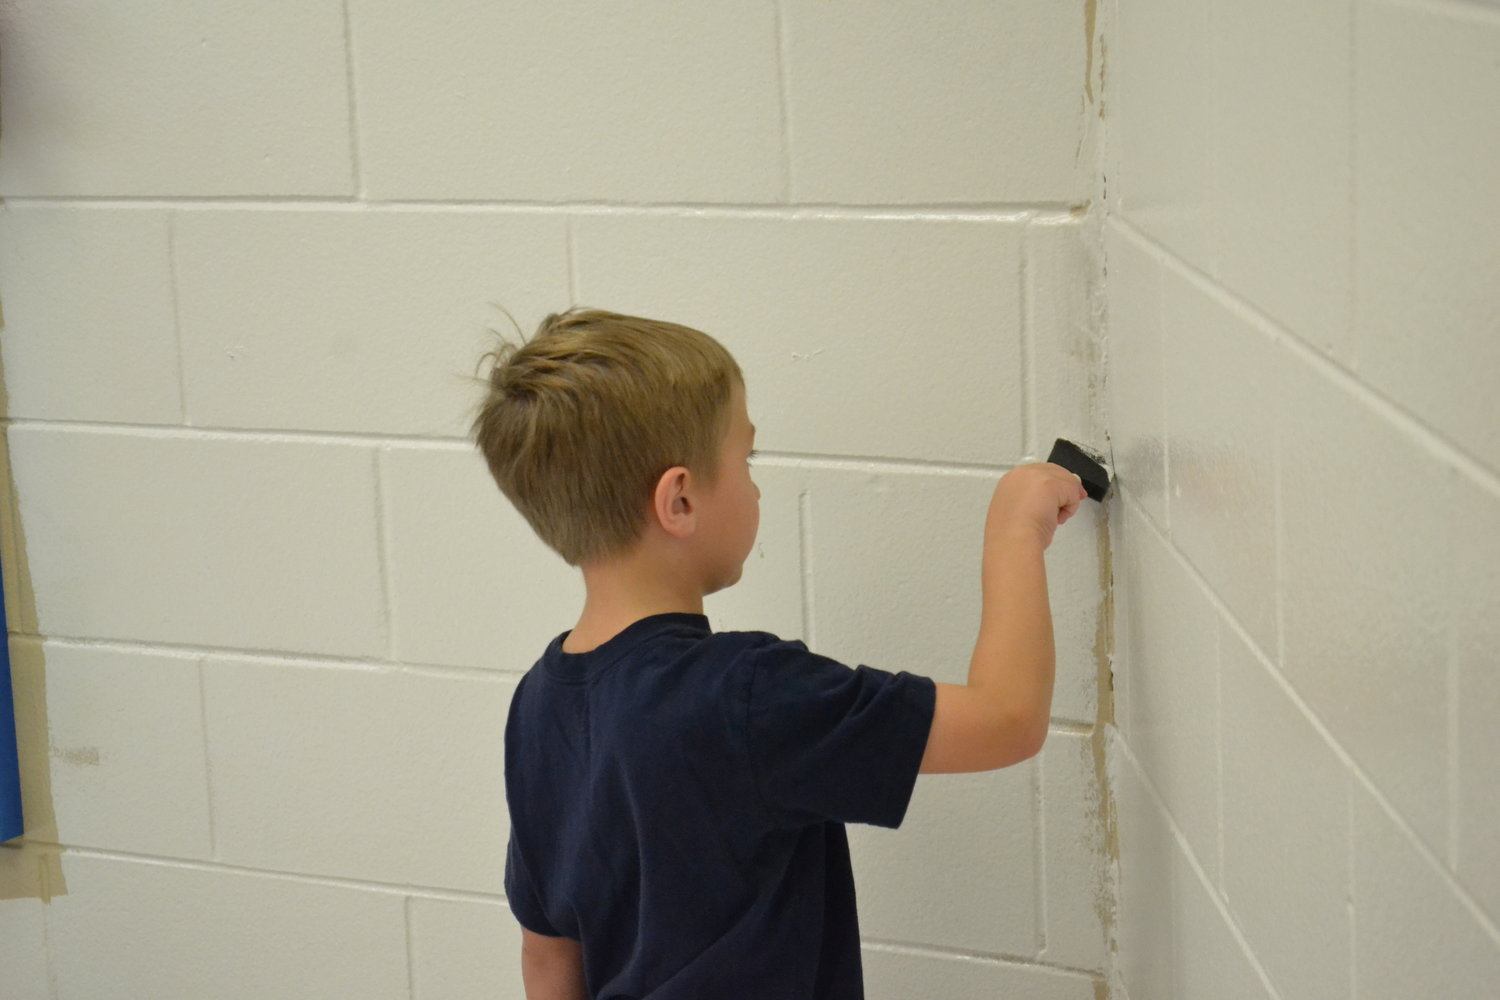 Some areas inside Parrish Elementary School received a fresh coat of paint as part of a cleanup day prior to students returning later this month.